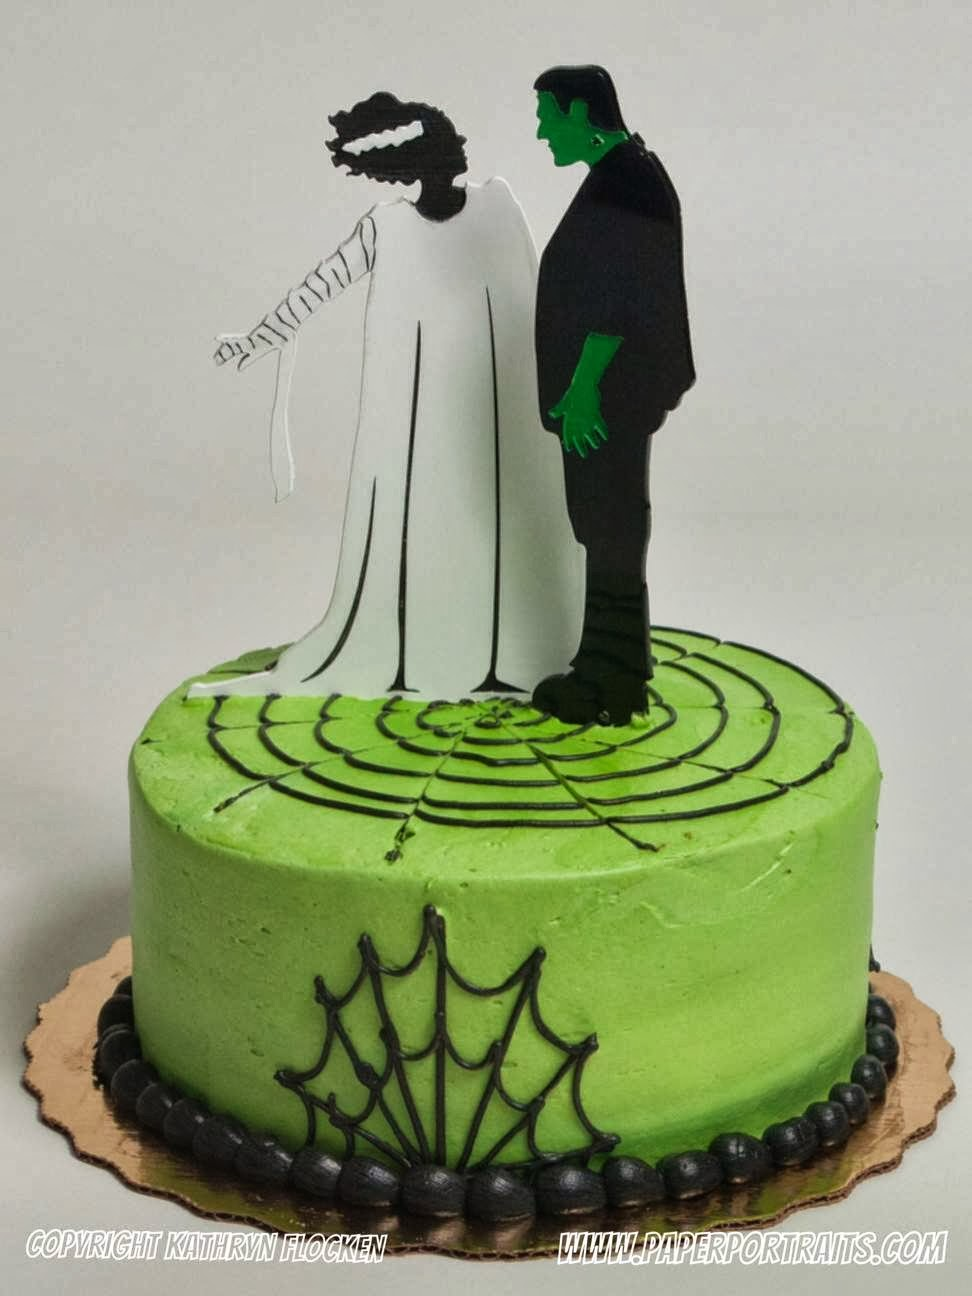 Cake Toppers Cake : PaperPortraits.com: Laser Cut Halloween and Wedding Cake ...